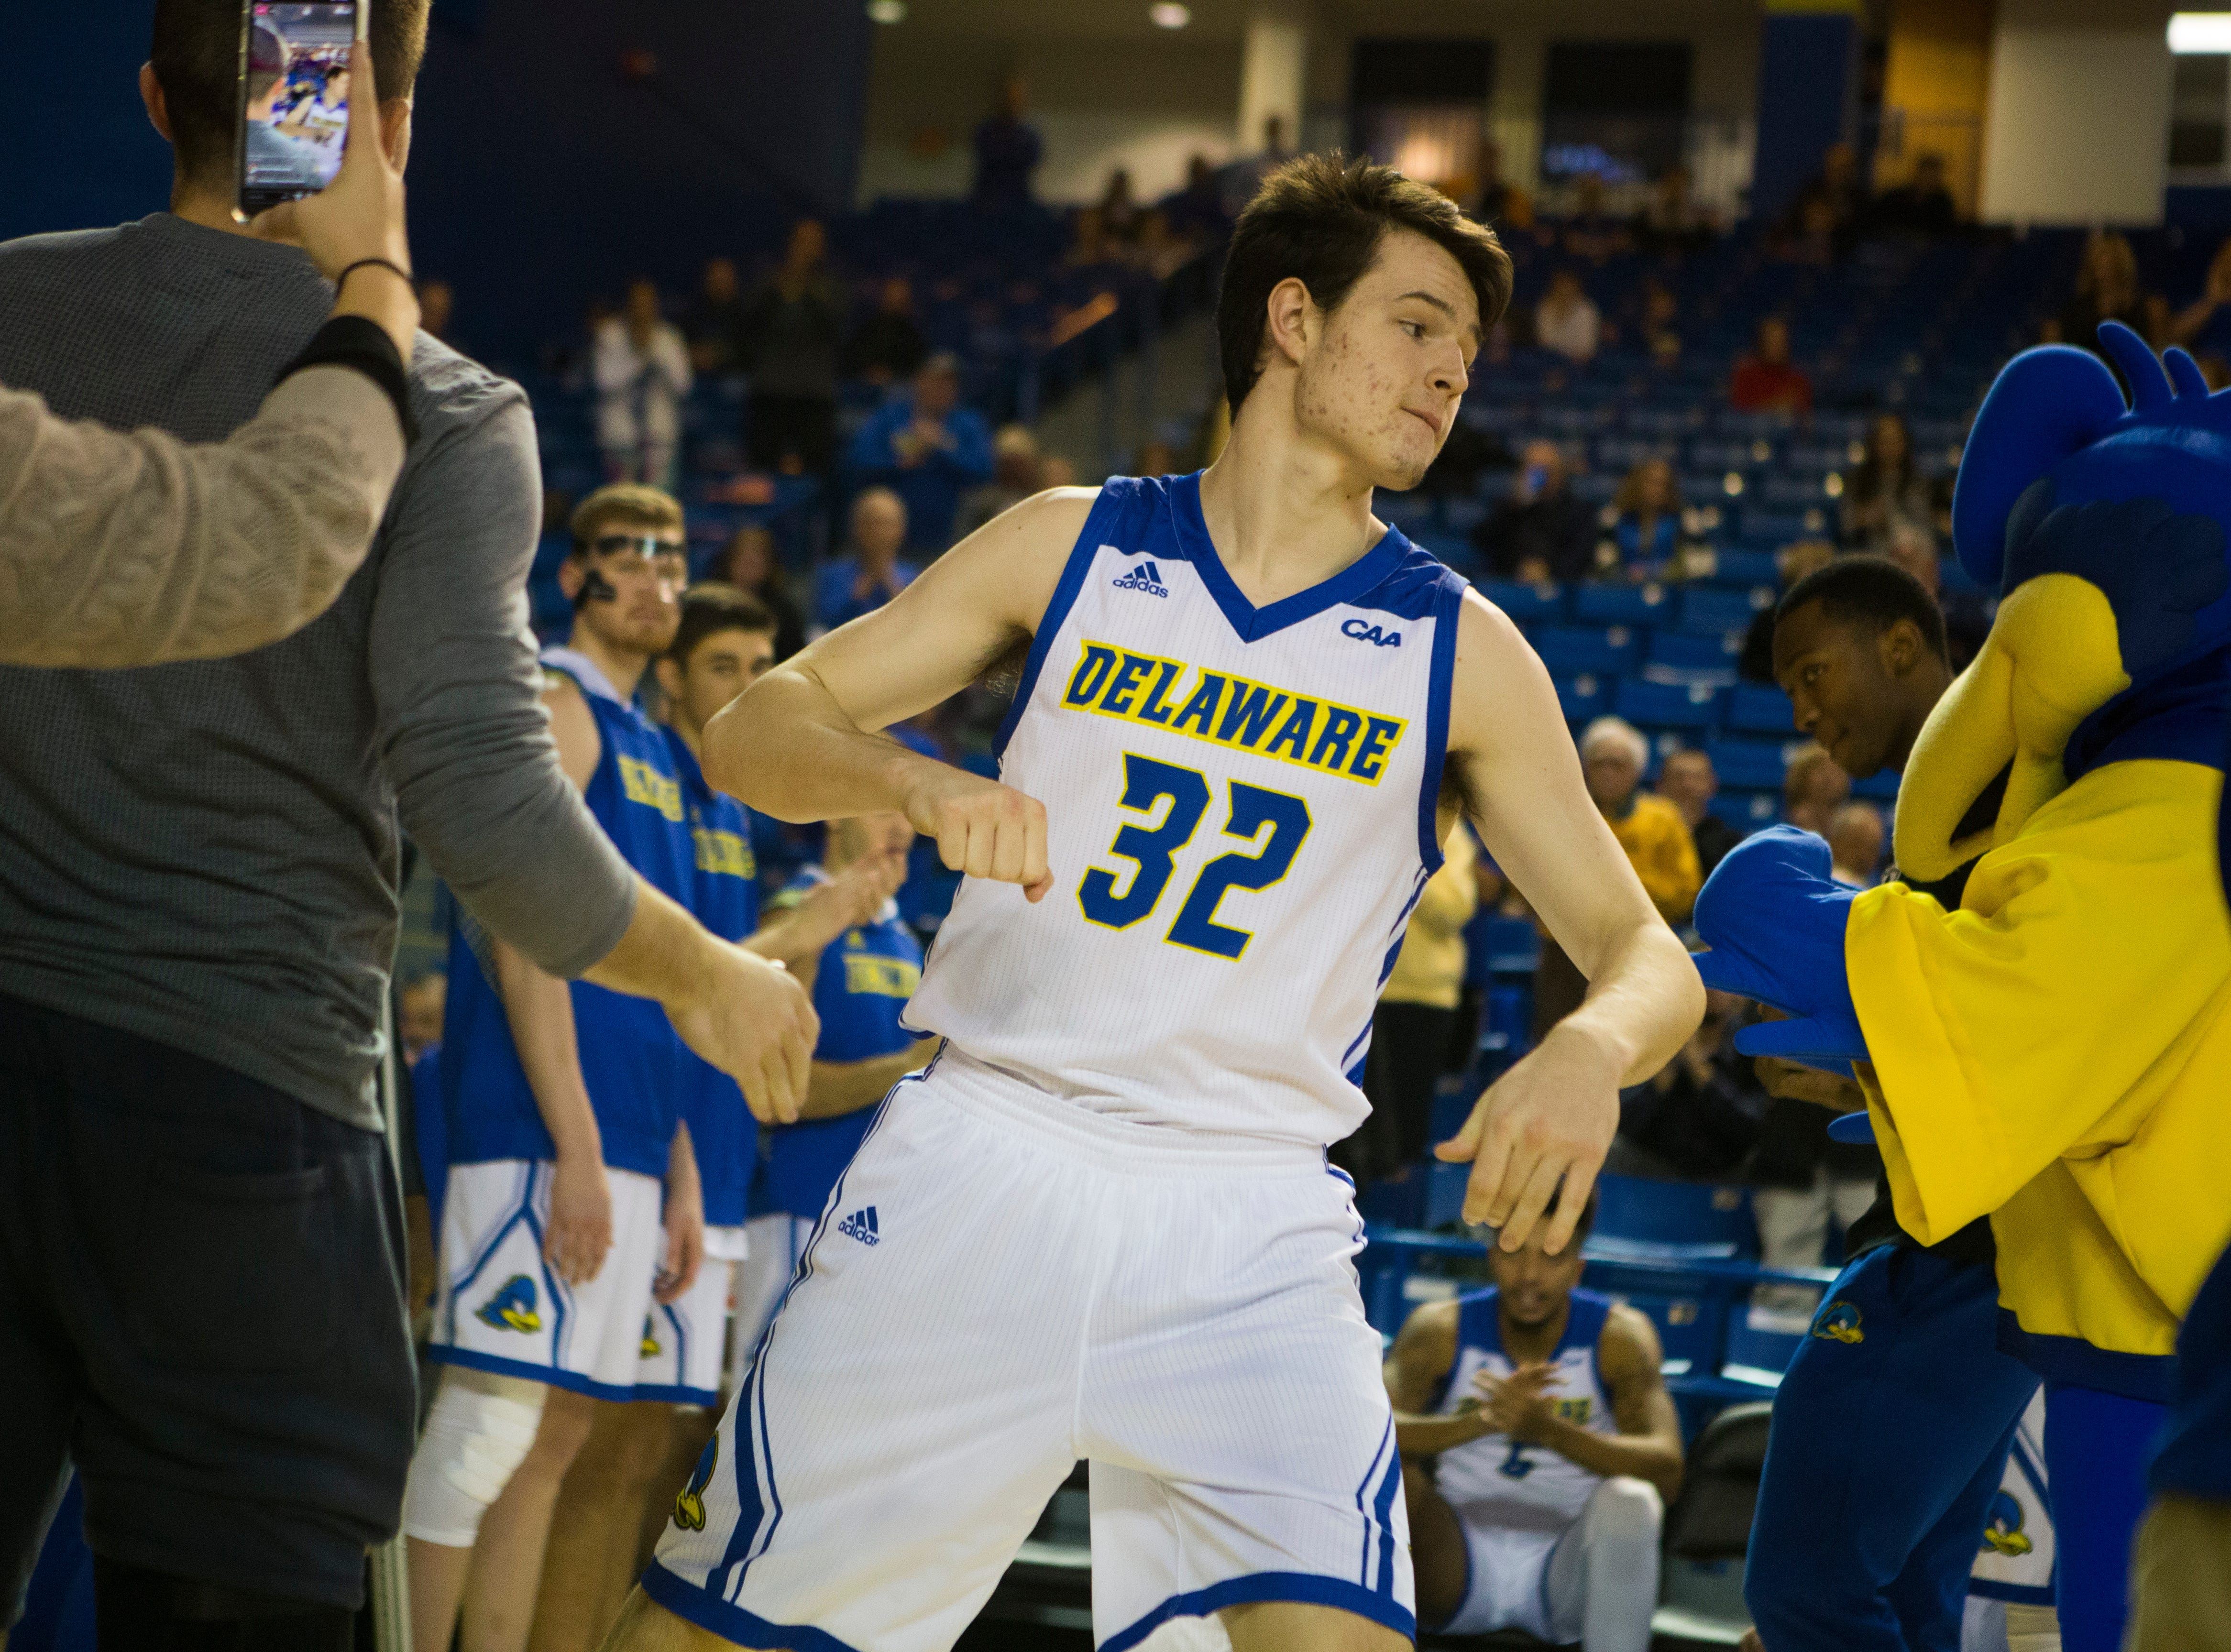 Delaware's Matt Veretto (32) takes to the court before they face Louisiana Tech Monday at the Bob Carpenter Center. Delaware defeated Louisiana Tech 75-71.